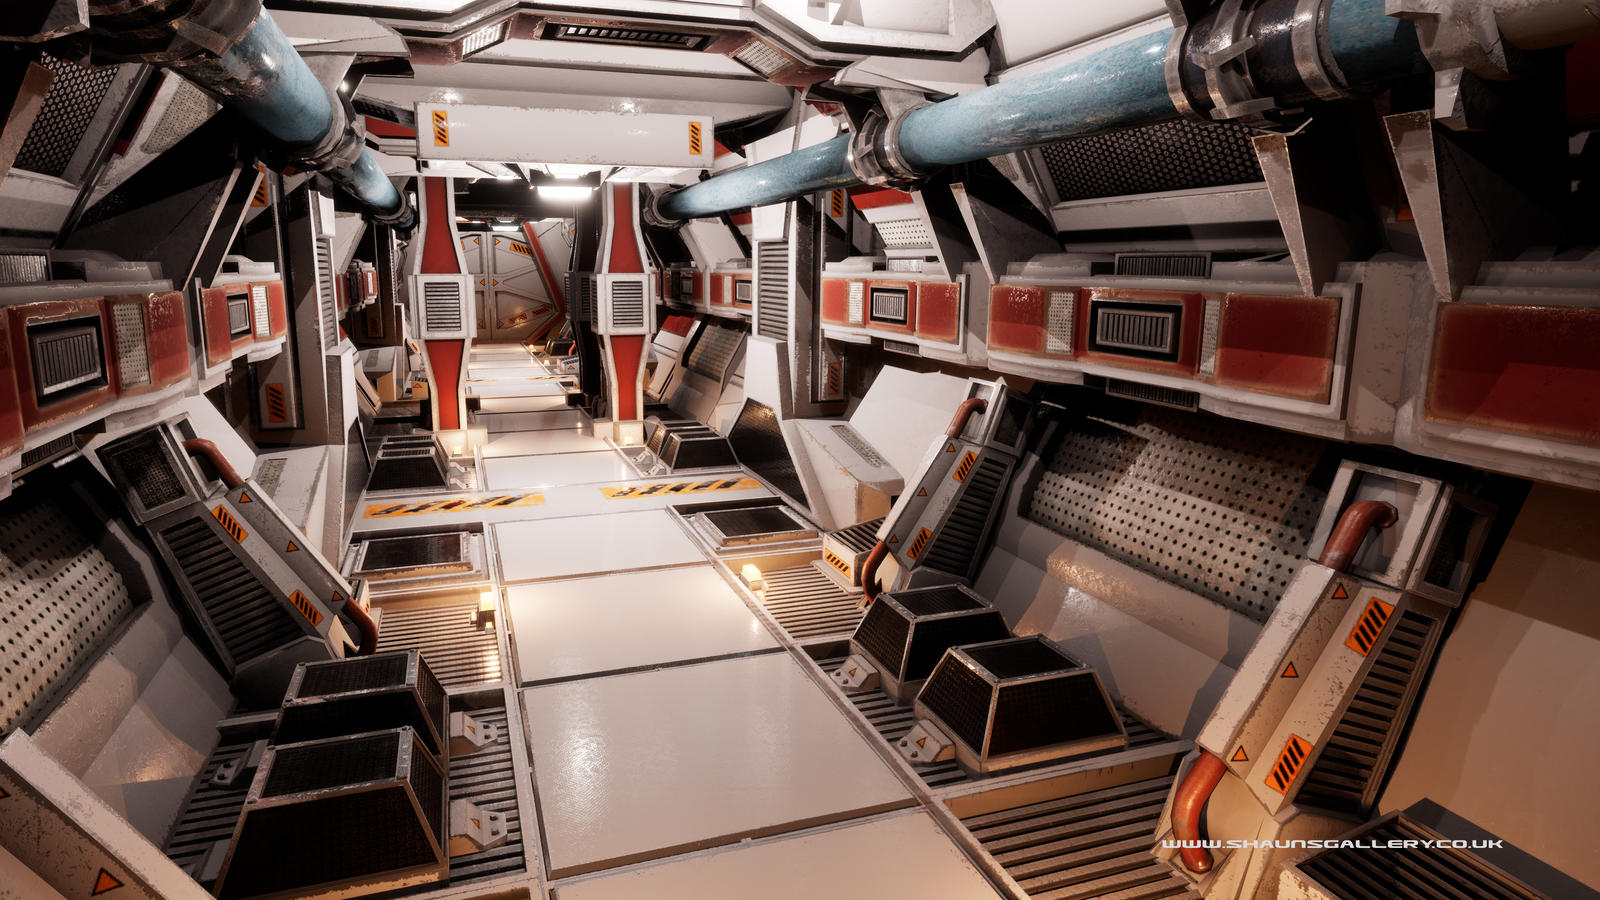 Low poly Sci-fi Environemnt by madaboutgames